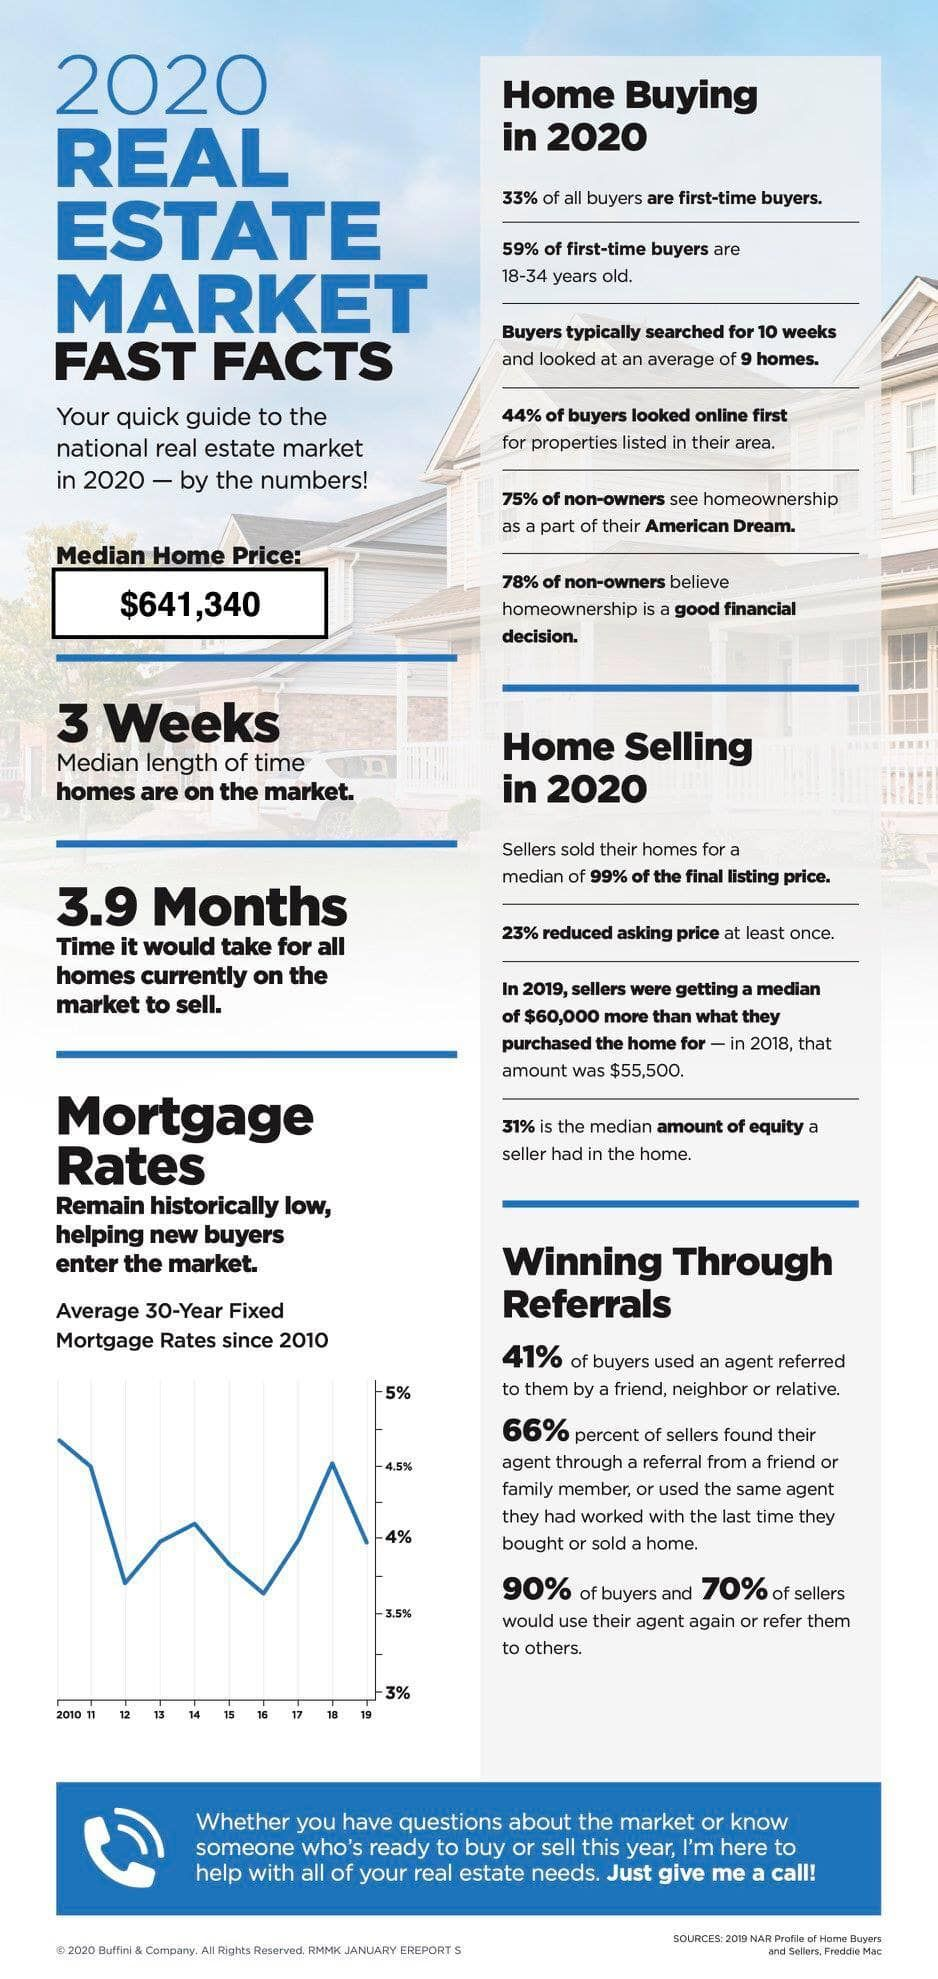 Pin By Debbra Ballard On Real Estate Business In 2020 Real